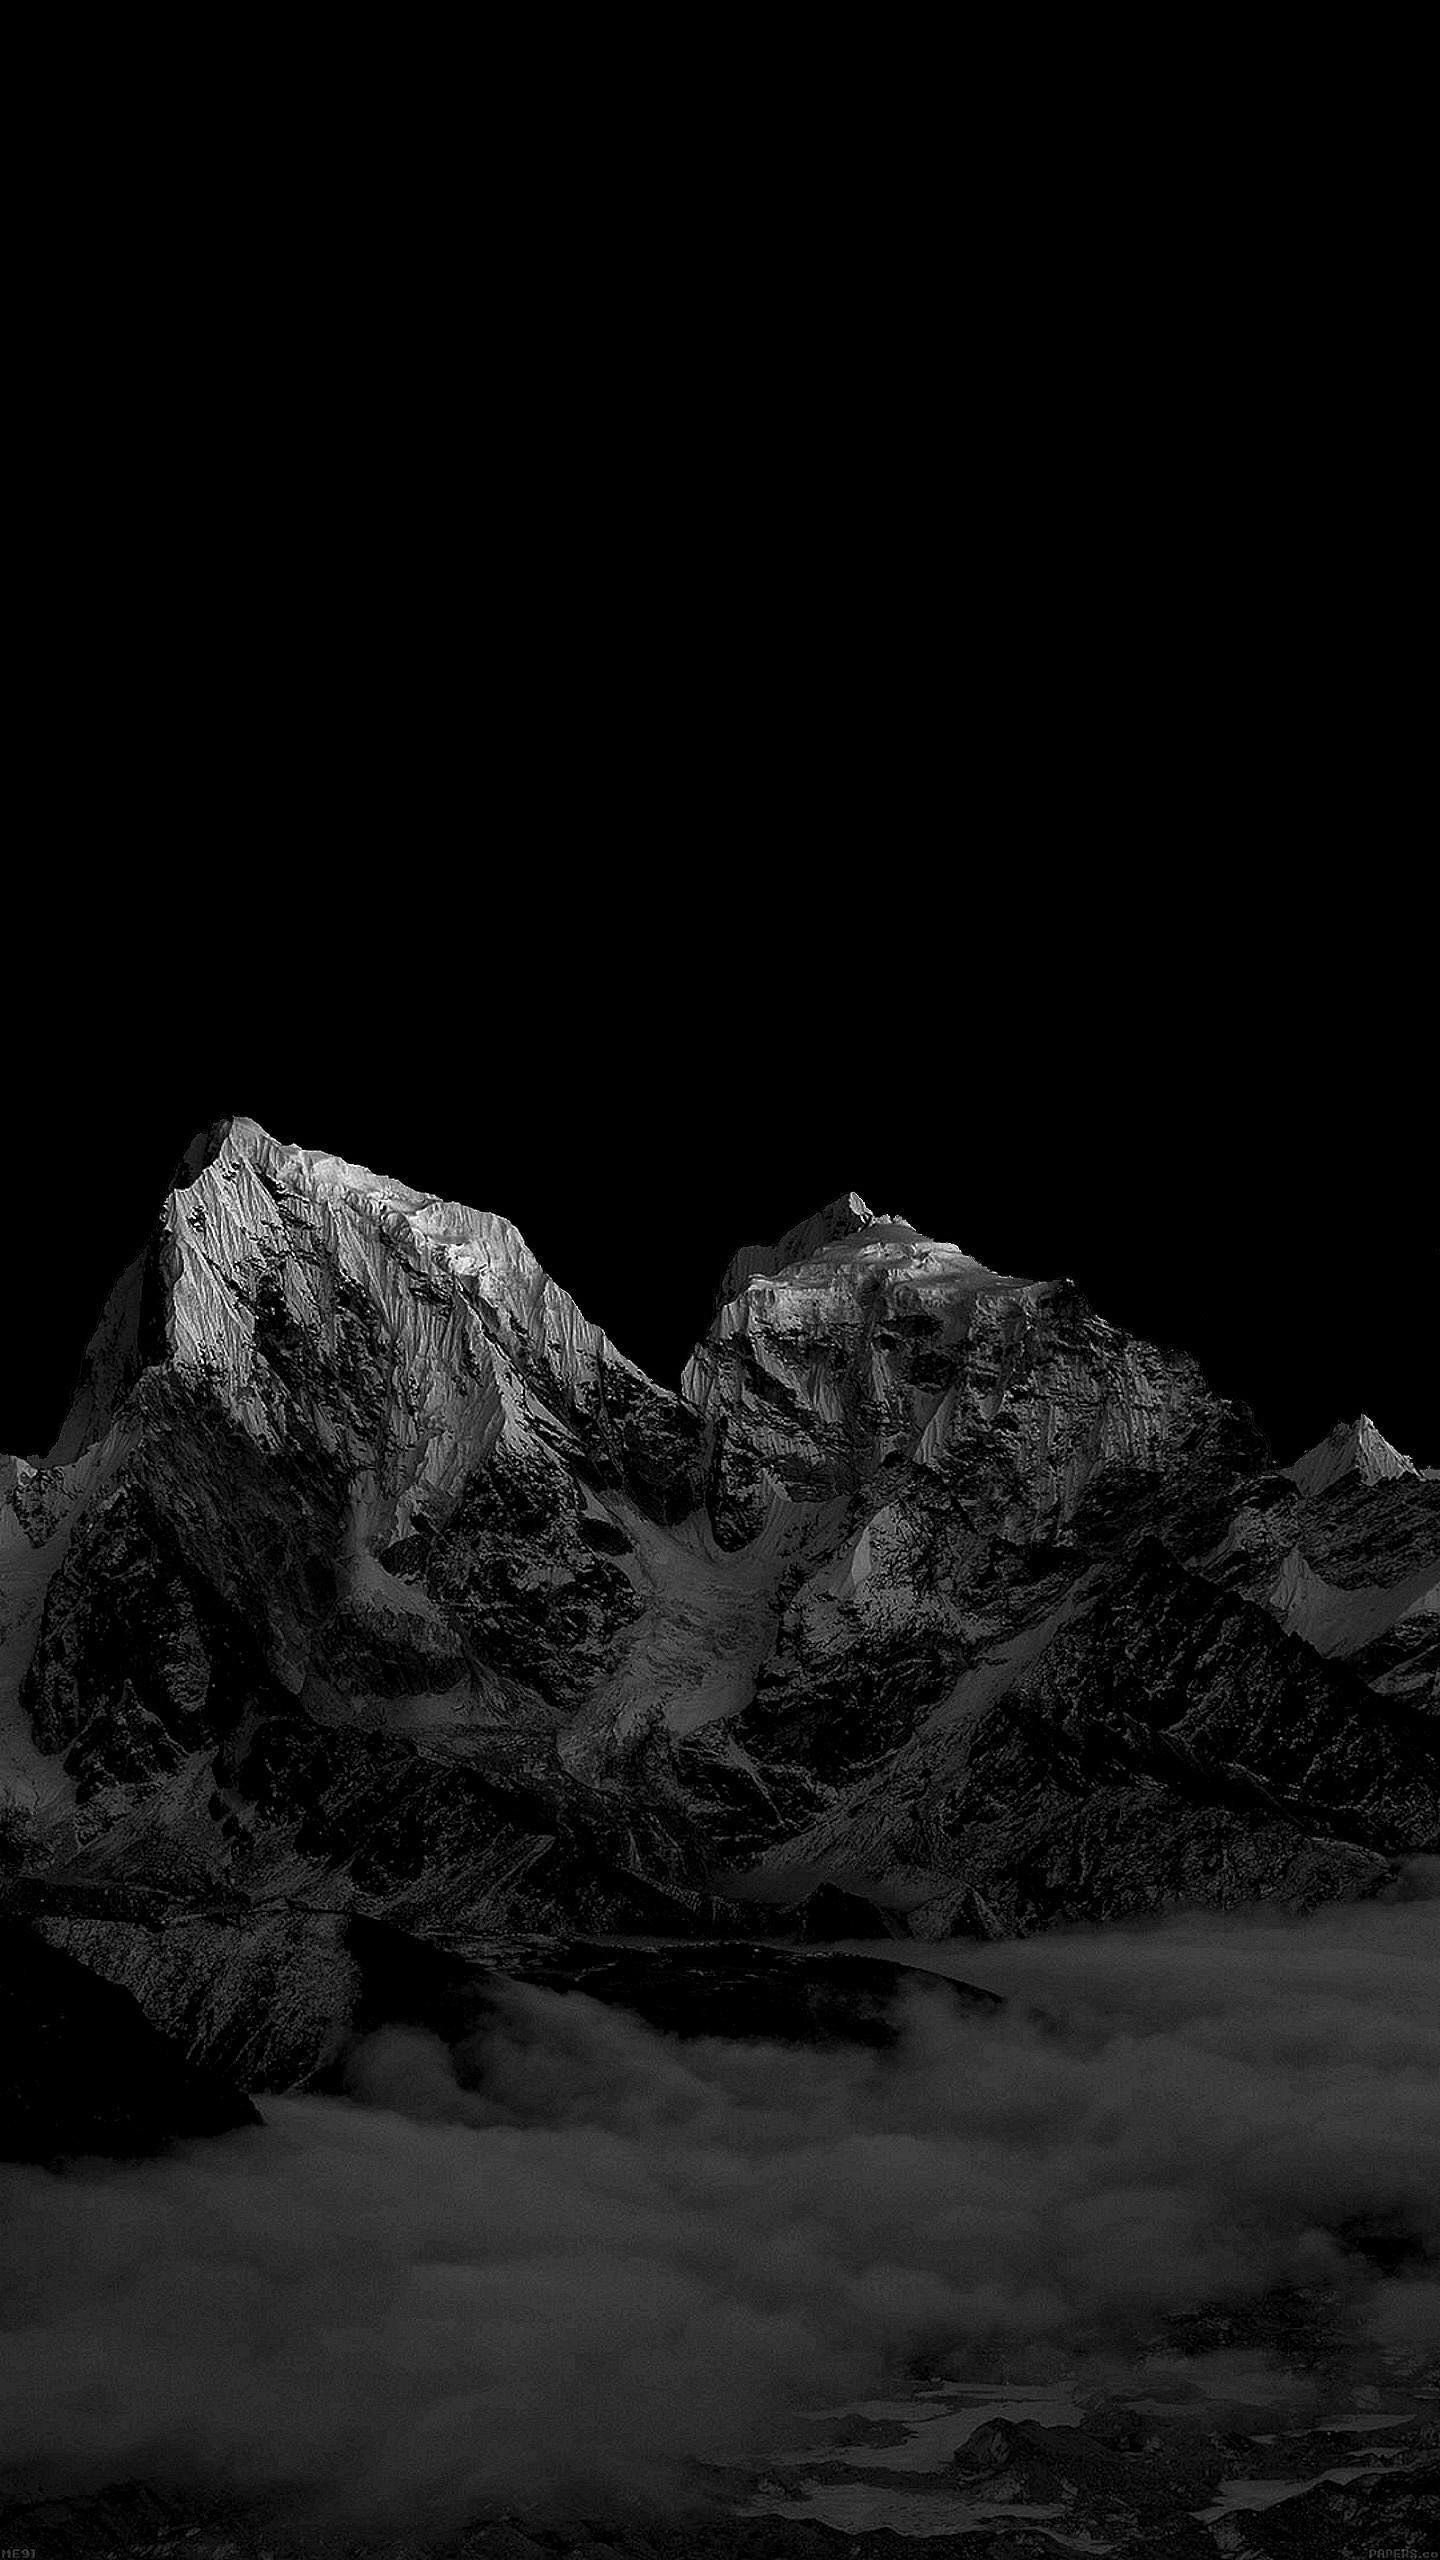 iphone oled wallpaper idownloadblog snow mountains